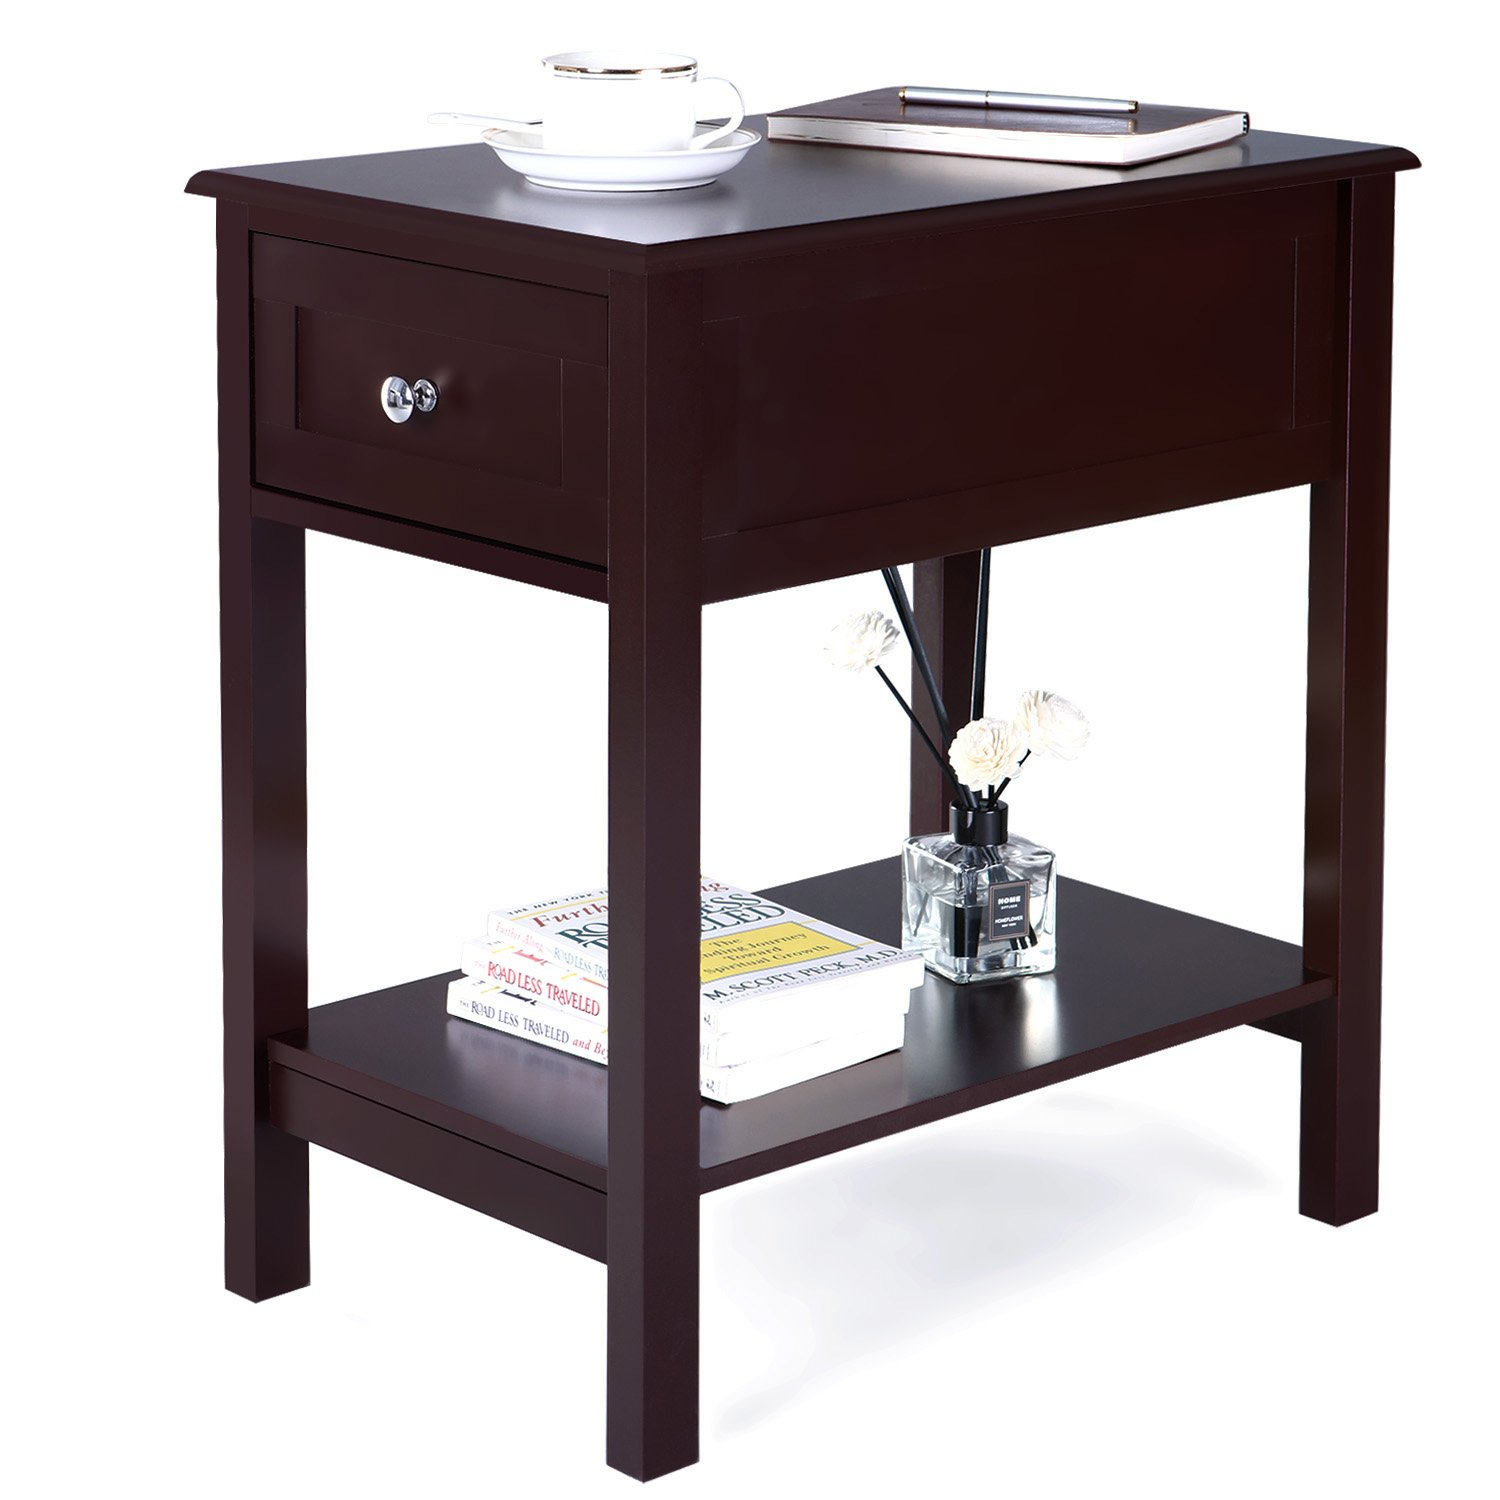 Songmics narrow side table with sliding drawer storage - Narrow side tables for living room ...